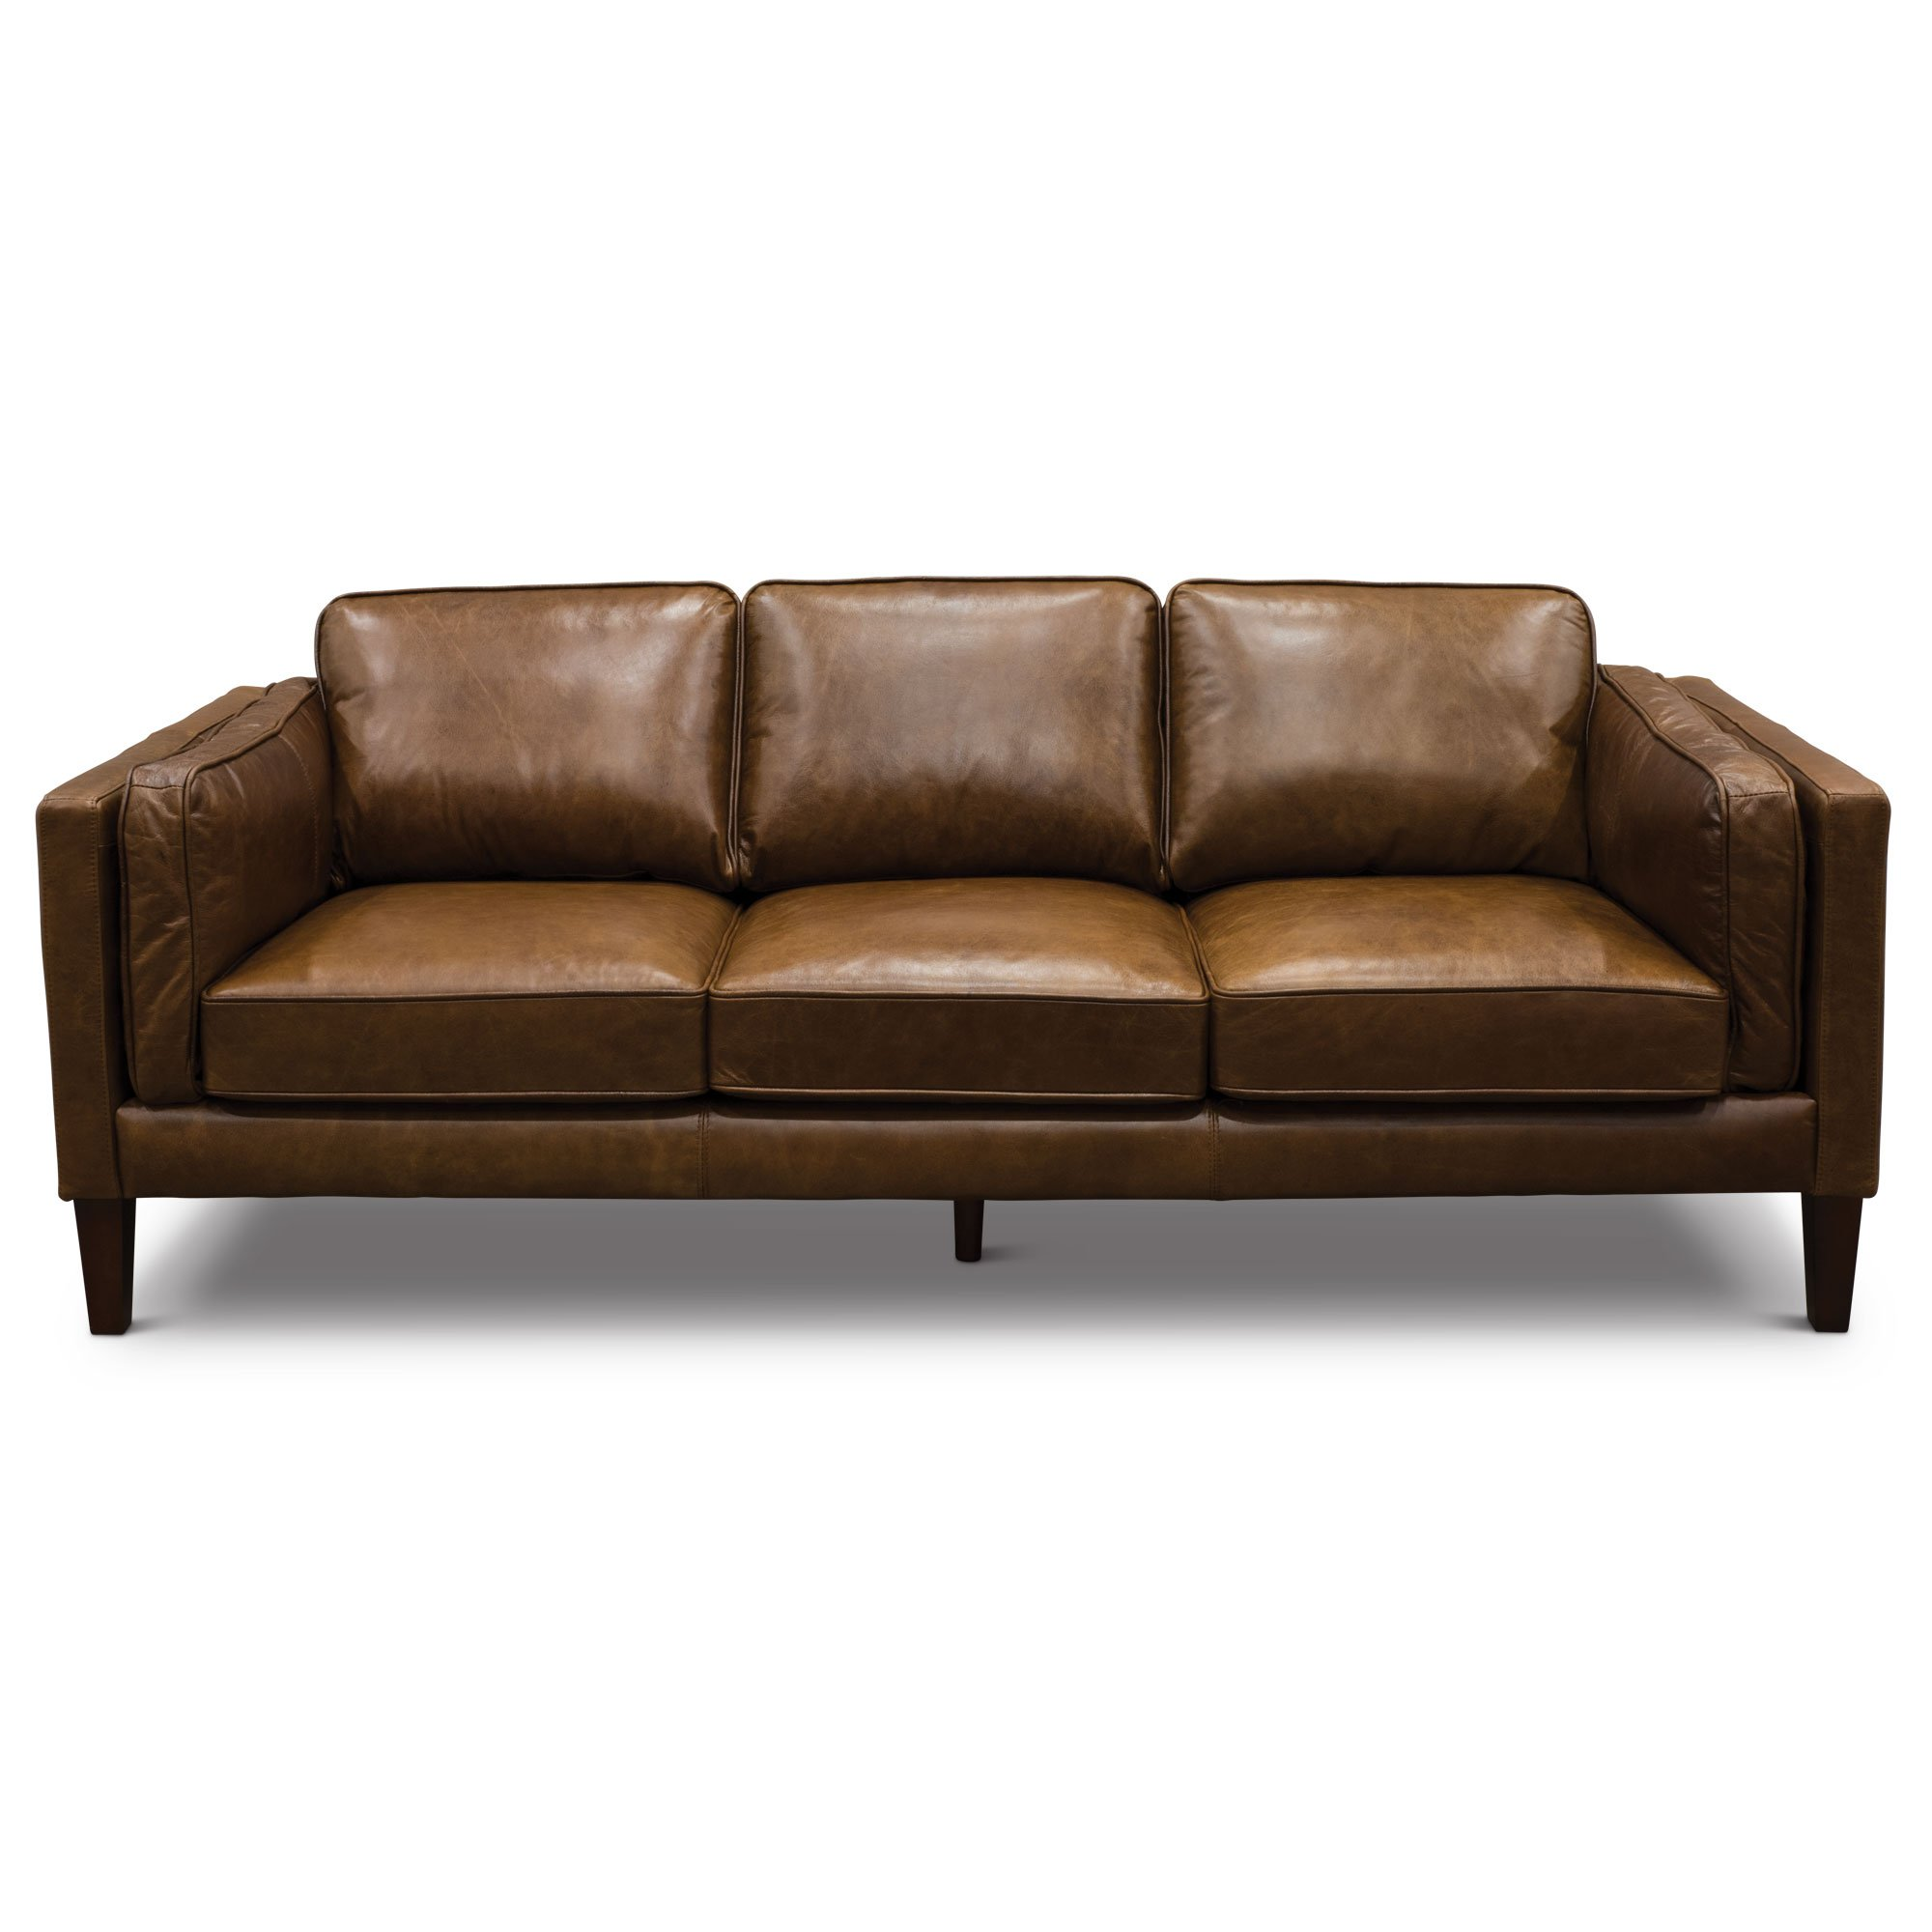 Leather sofa brown hamilton leather sofa 81 west elm thesofa Chocolate loveseat